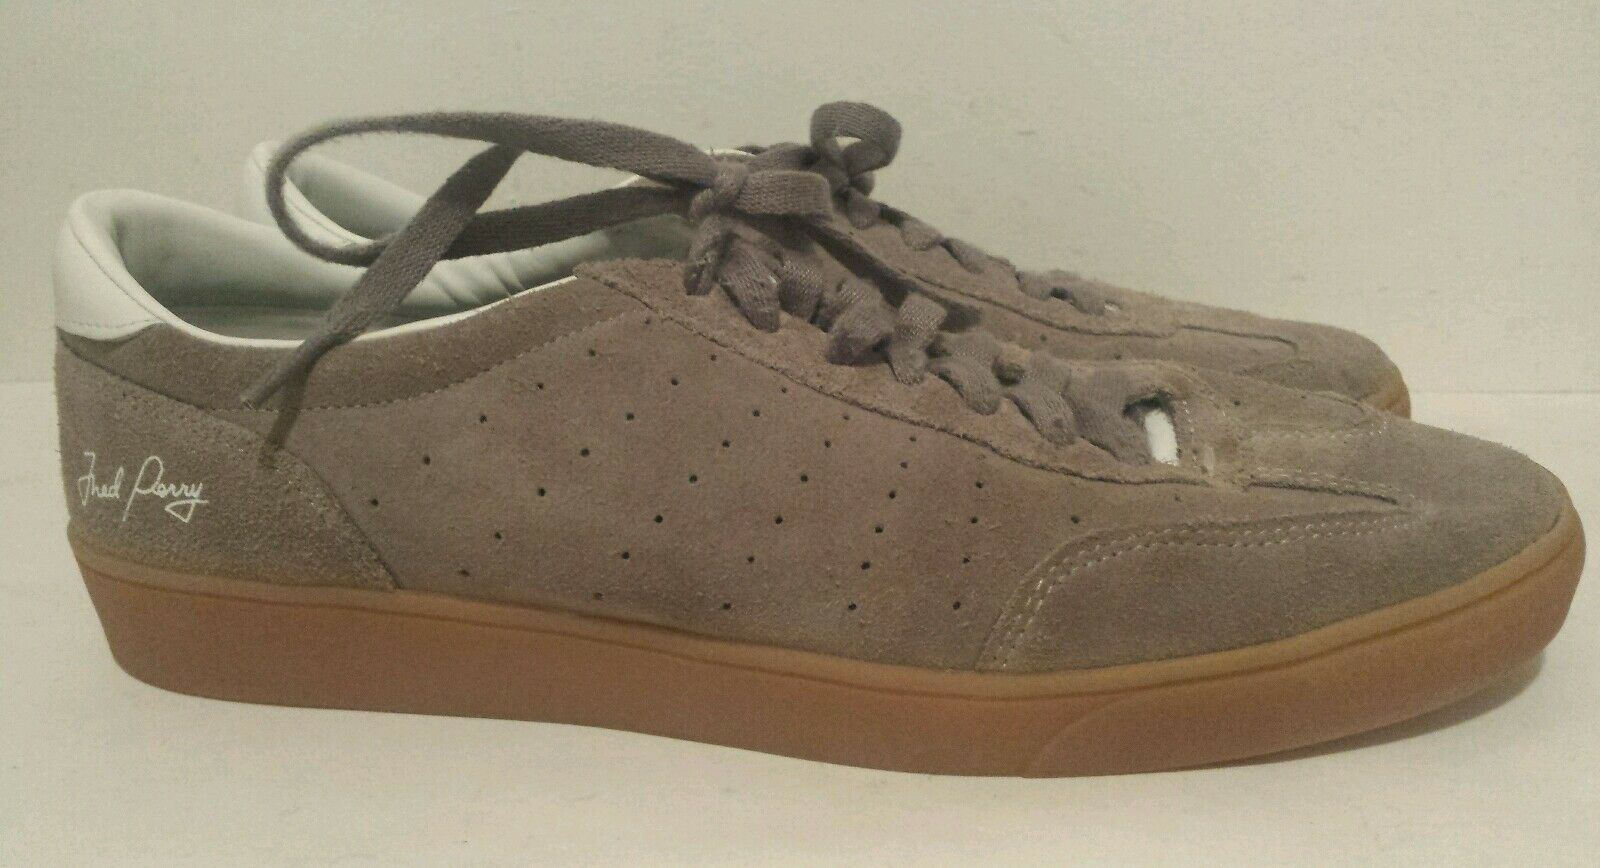 Fred Perry Sportswear Sneakers Size 10.5 (US)